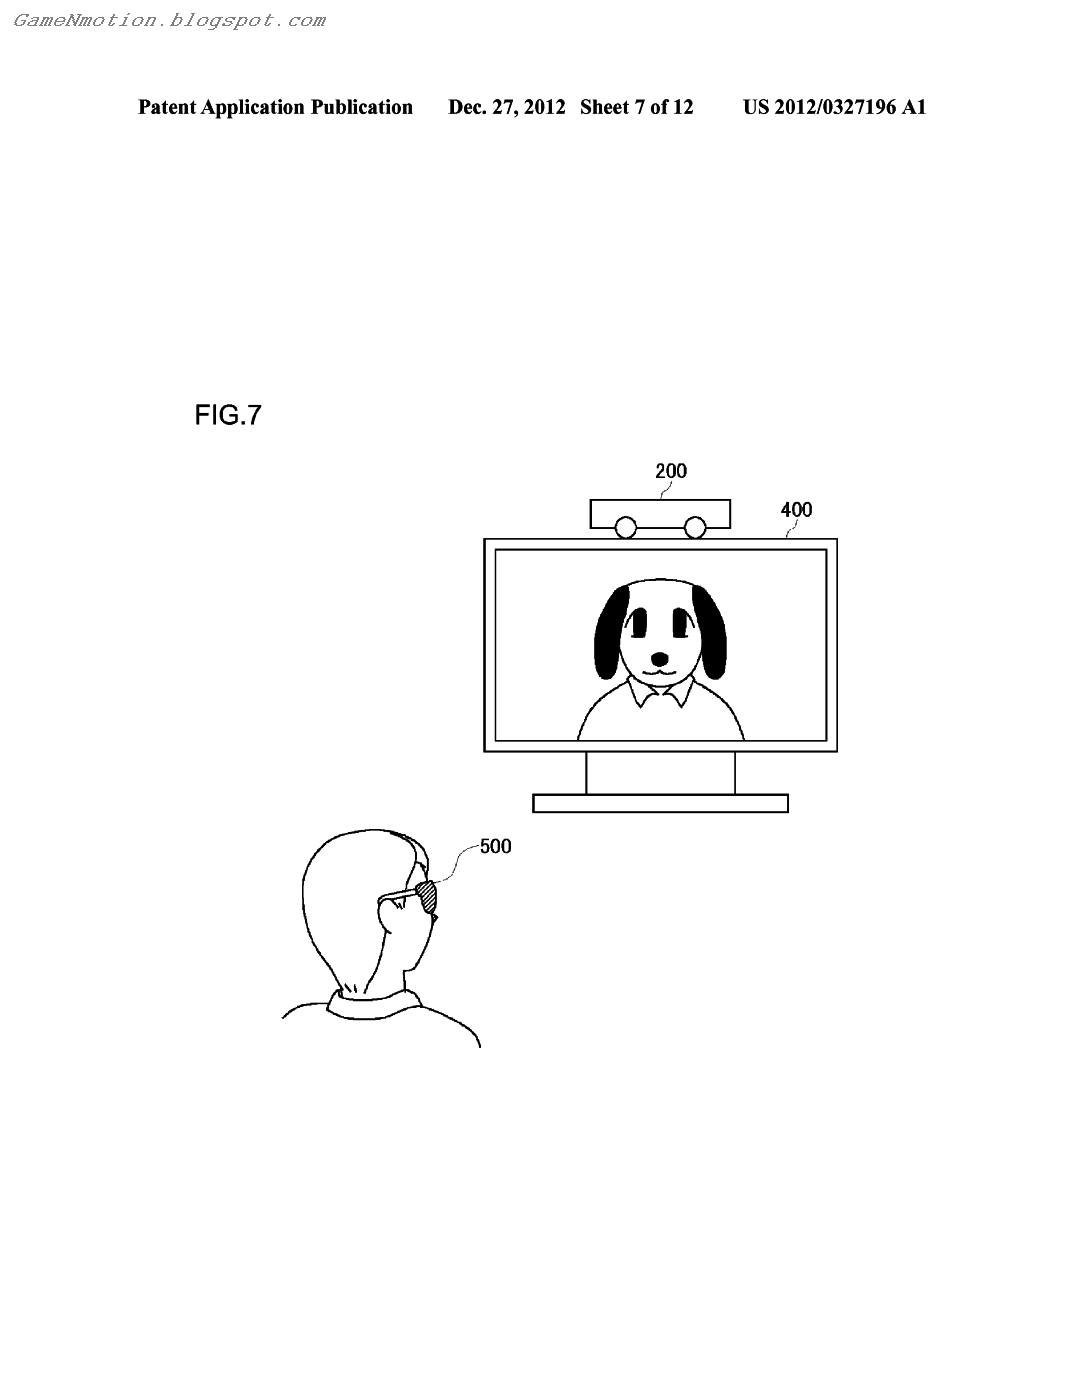 Game N Motion Playstation 4 Dual Playstation Eye Patent